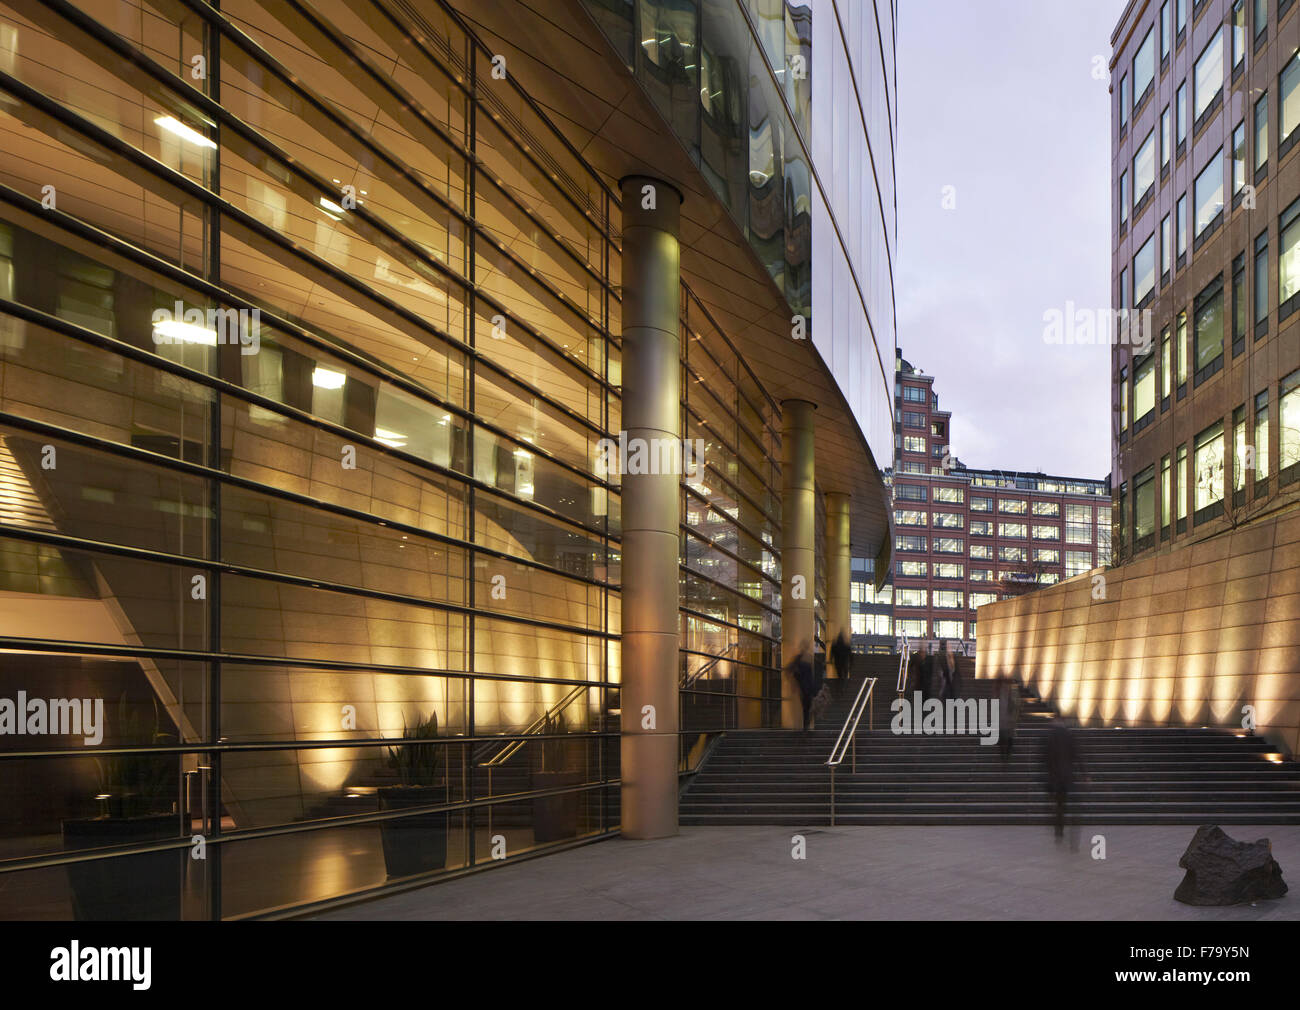 Public Space, Broadgate London 2012 - Stock Image